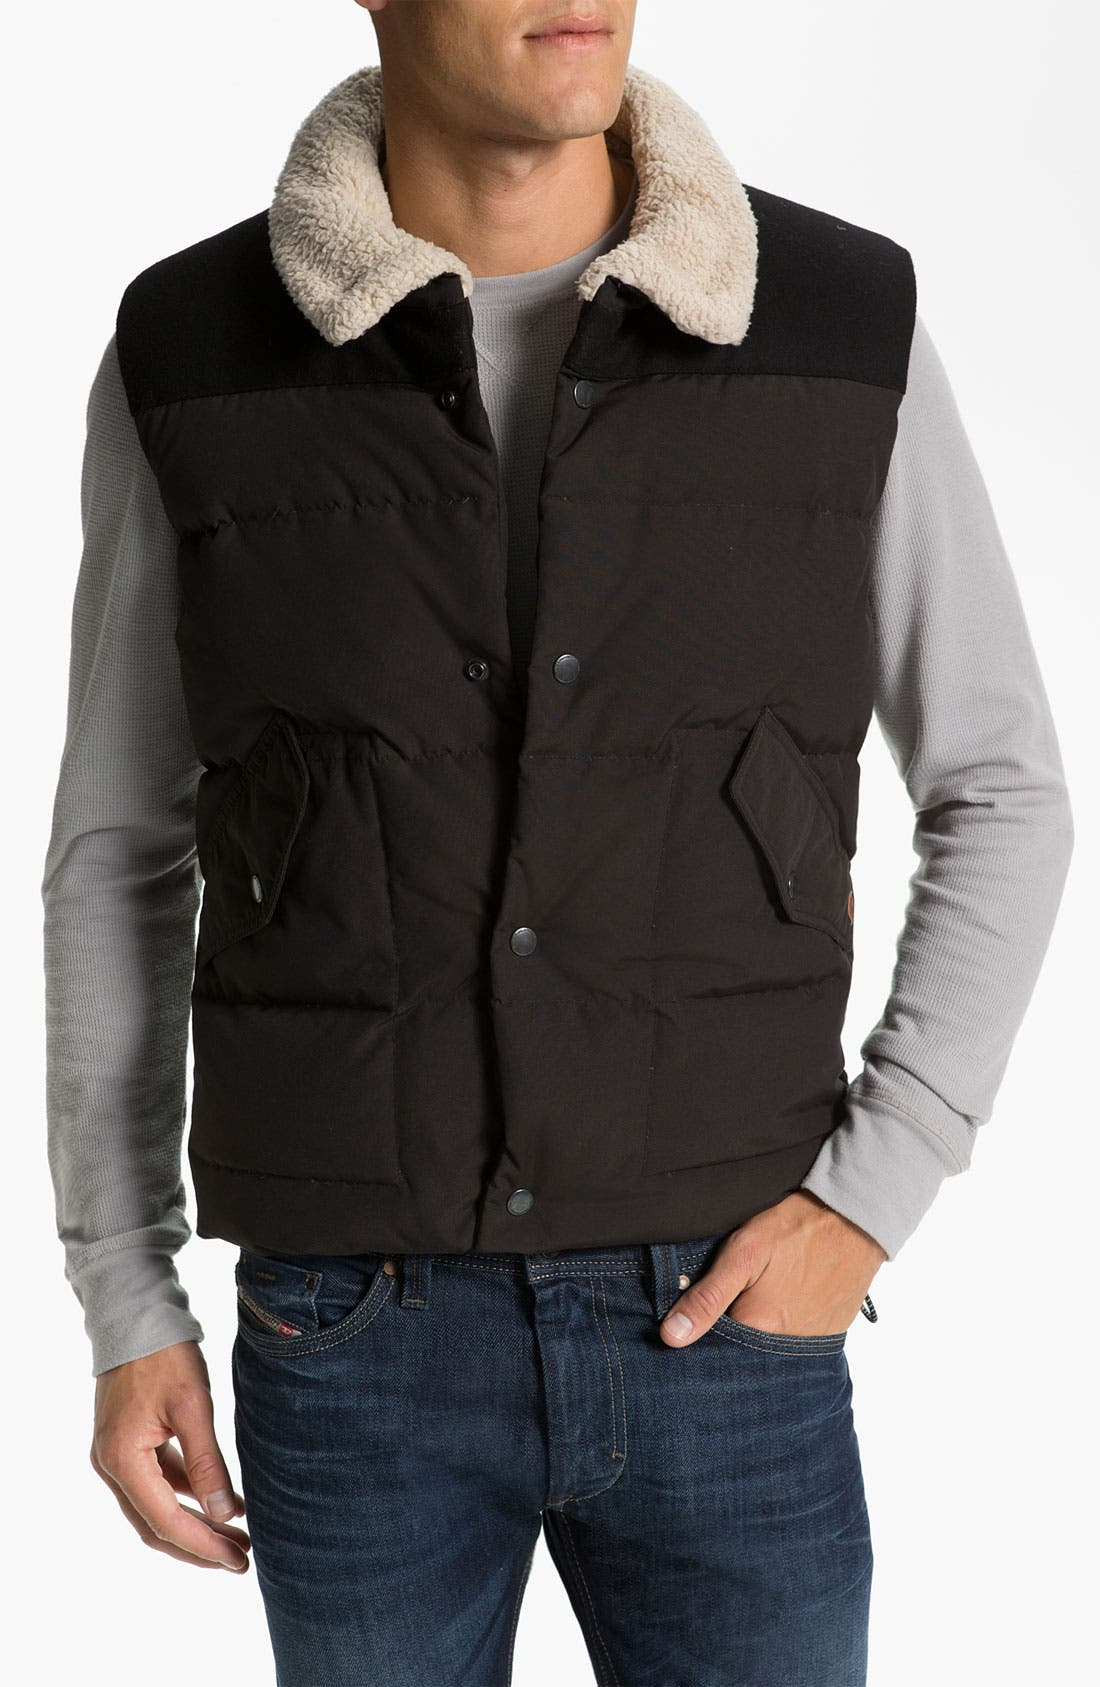 Alternate Image 1 Selected - J.C. Rags Quilted Puffer Vest with Faux Shearling Trim